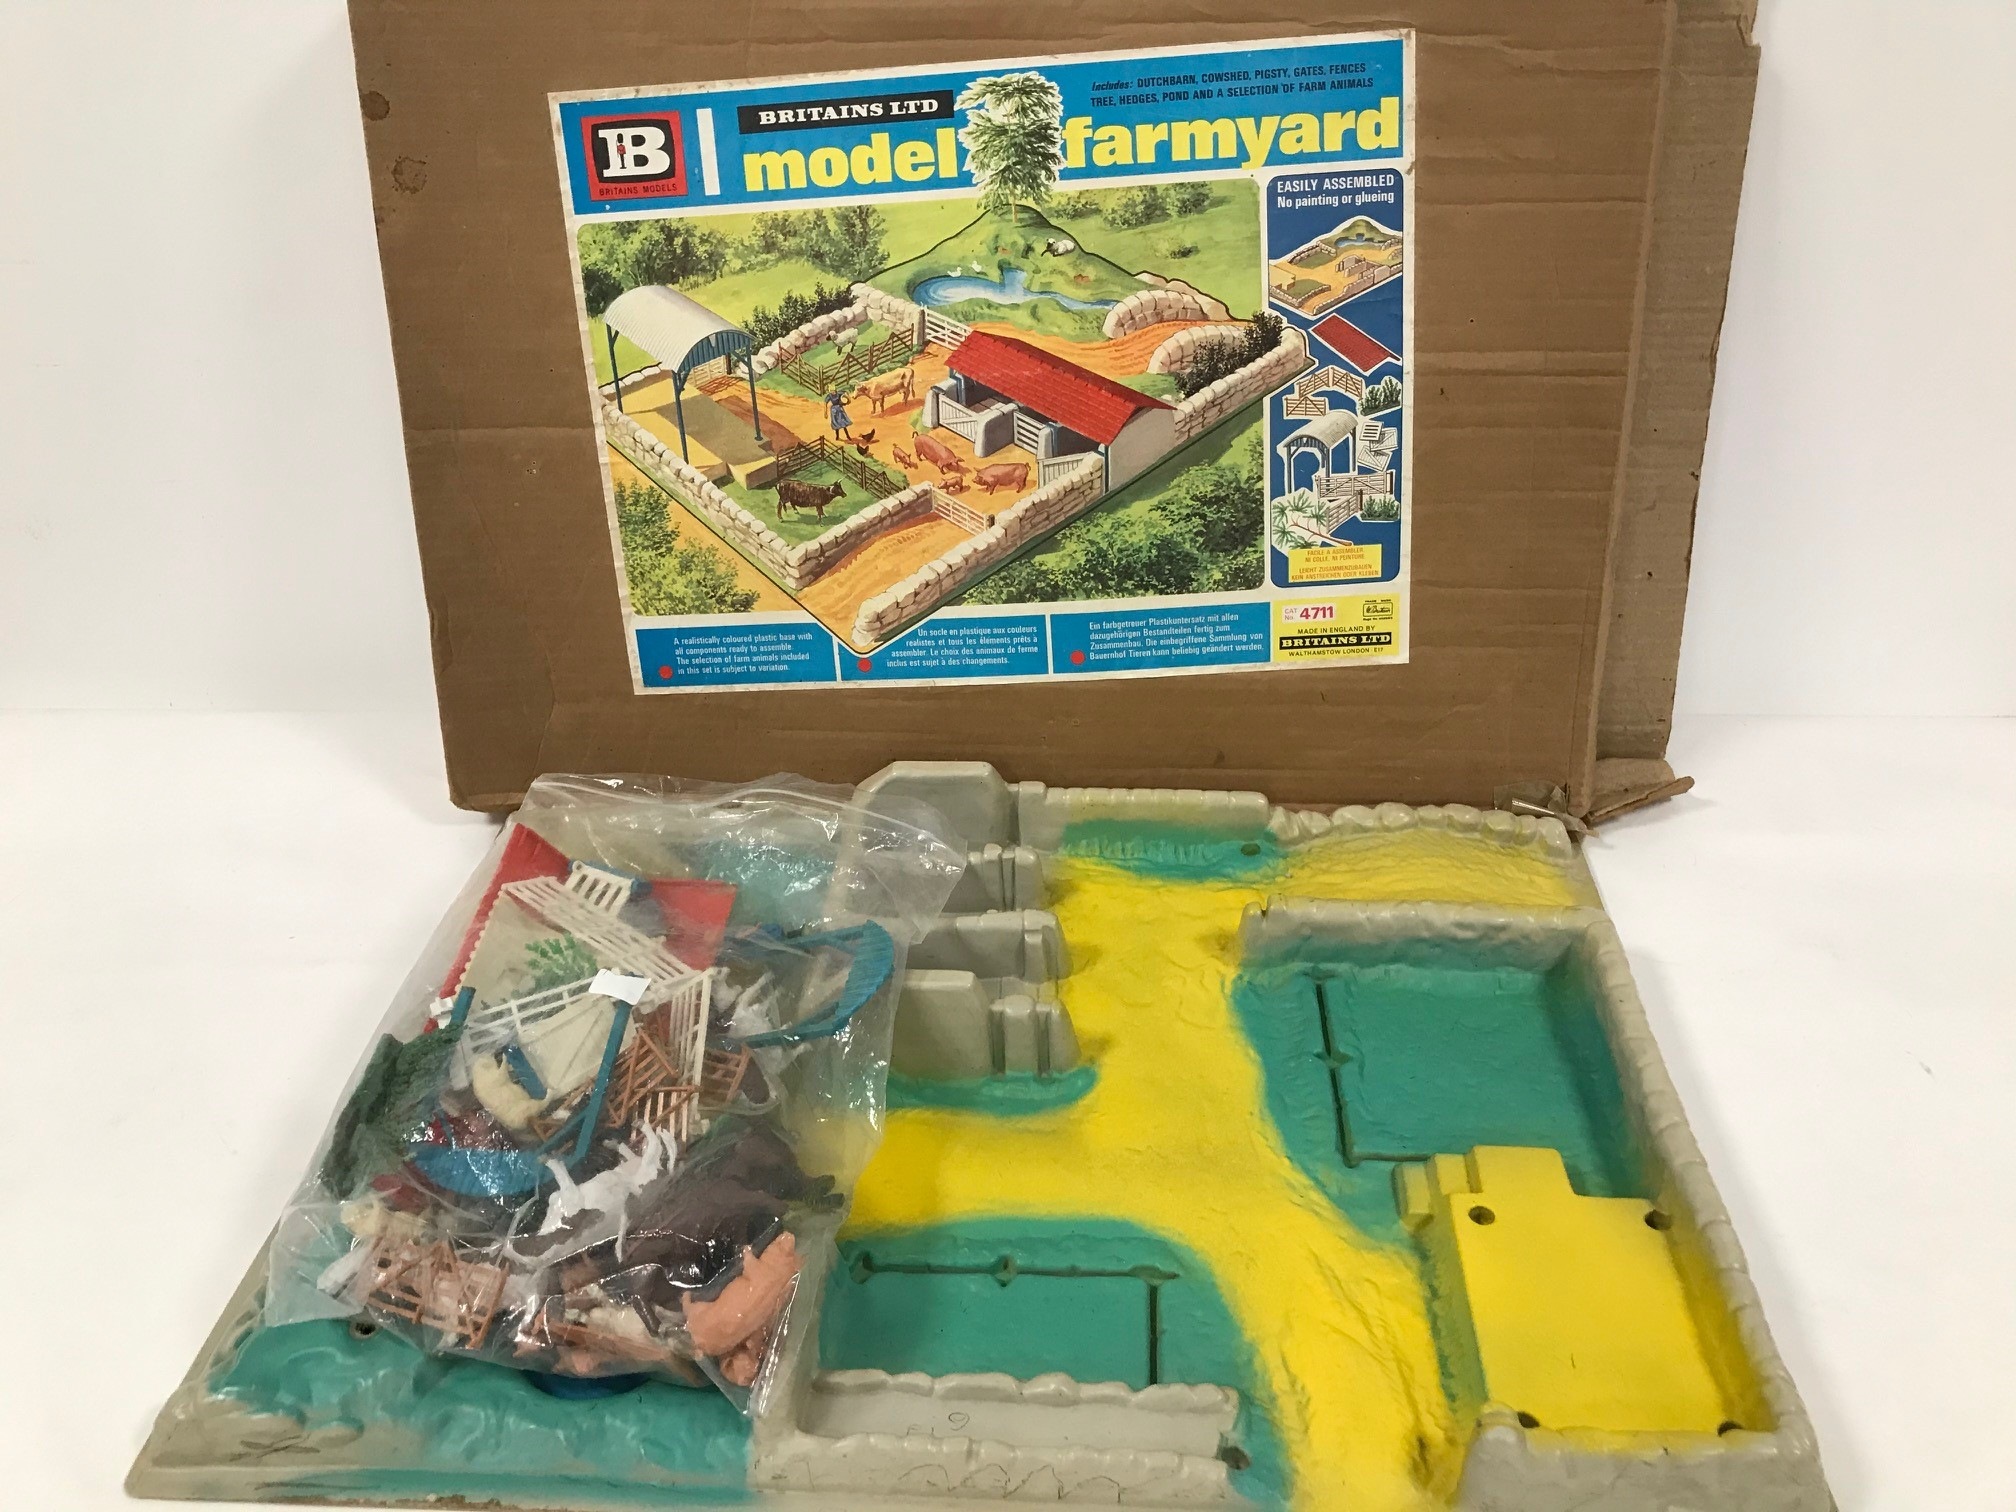 A Britain Ltd Model Farmyard, in box with group of Britains plastic farm yard animals and fences